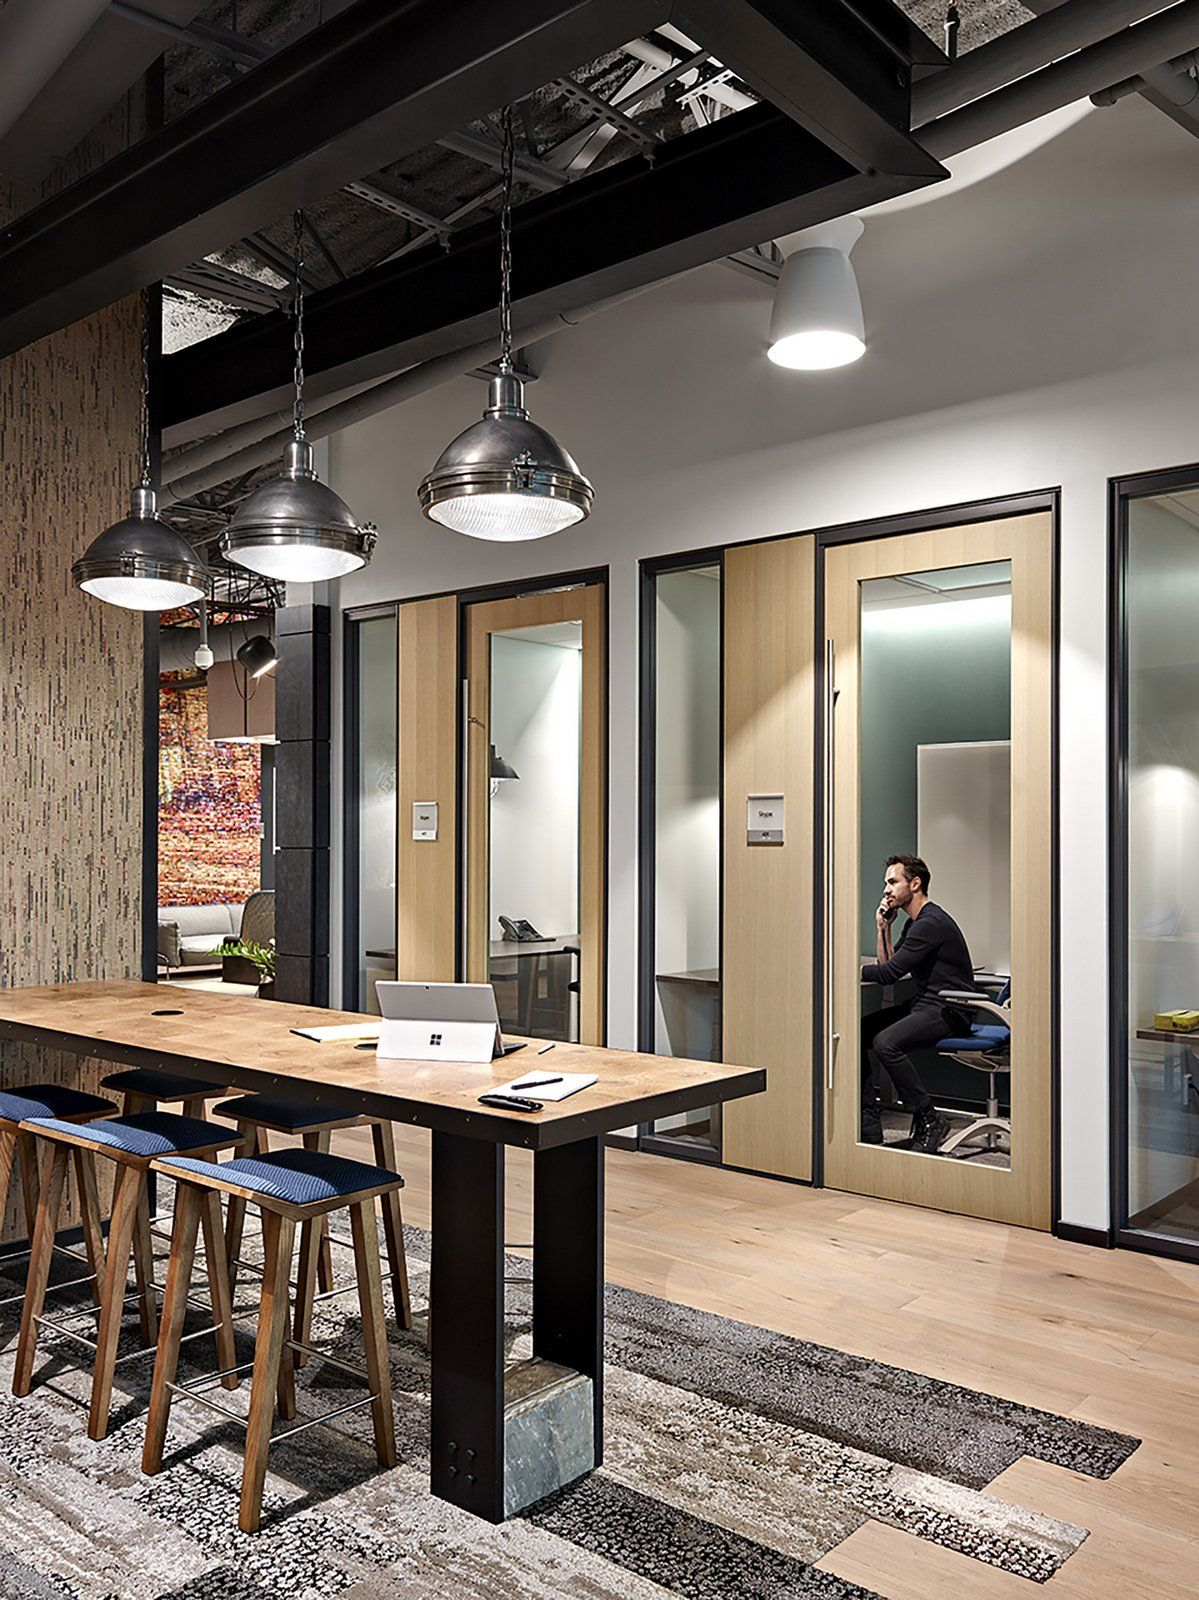 Office tour microsoft offices nashville interiors - Interior design school nashville ...